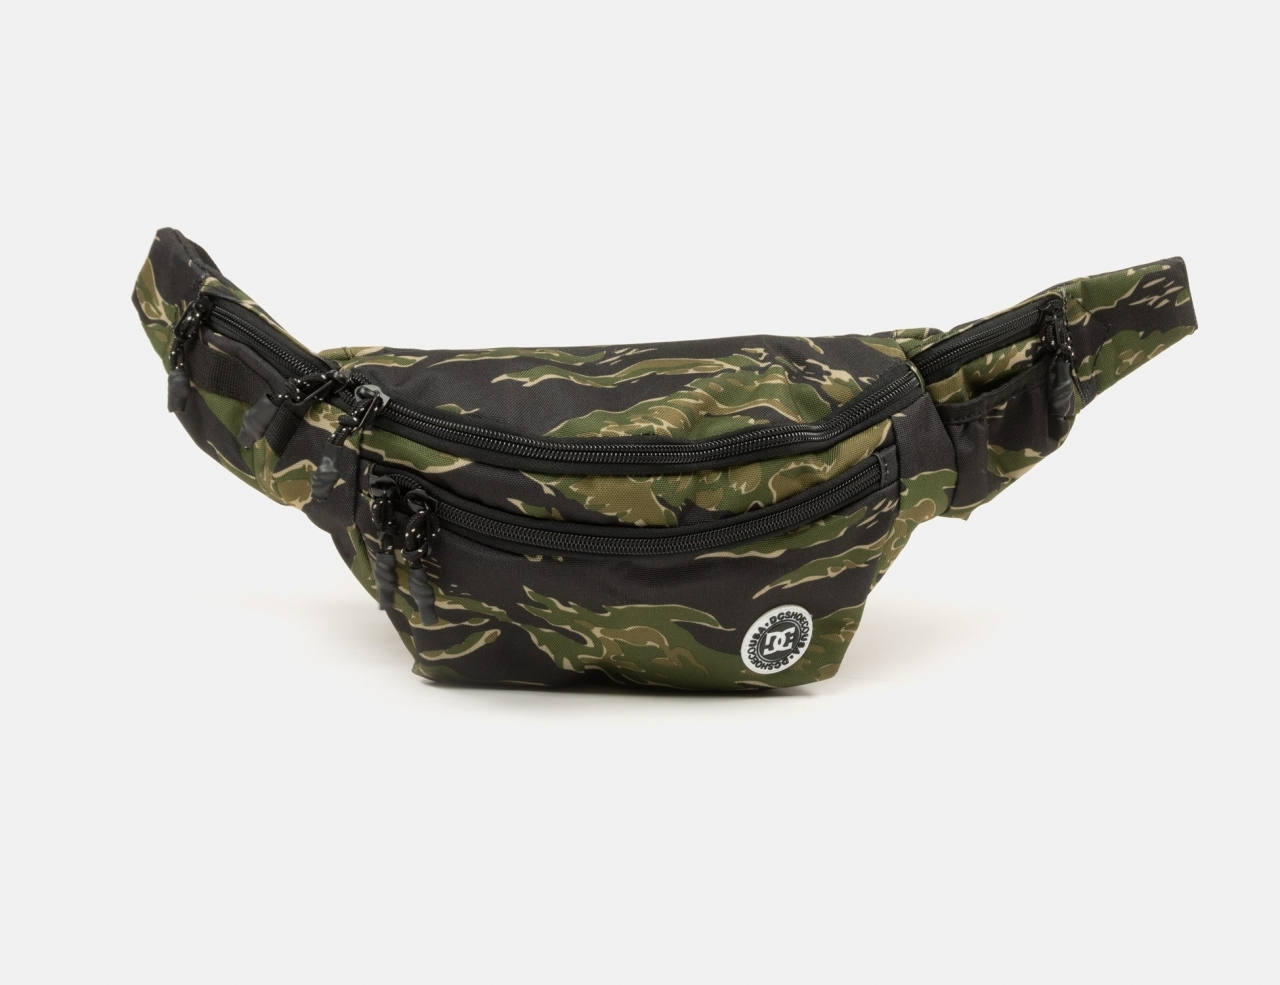 DC Shoes Waistage M Hip Bag - Camo